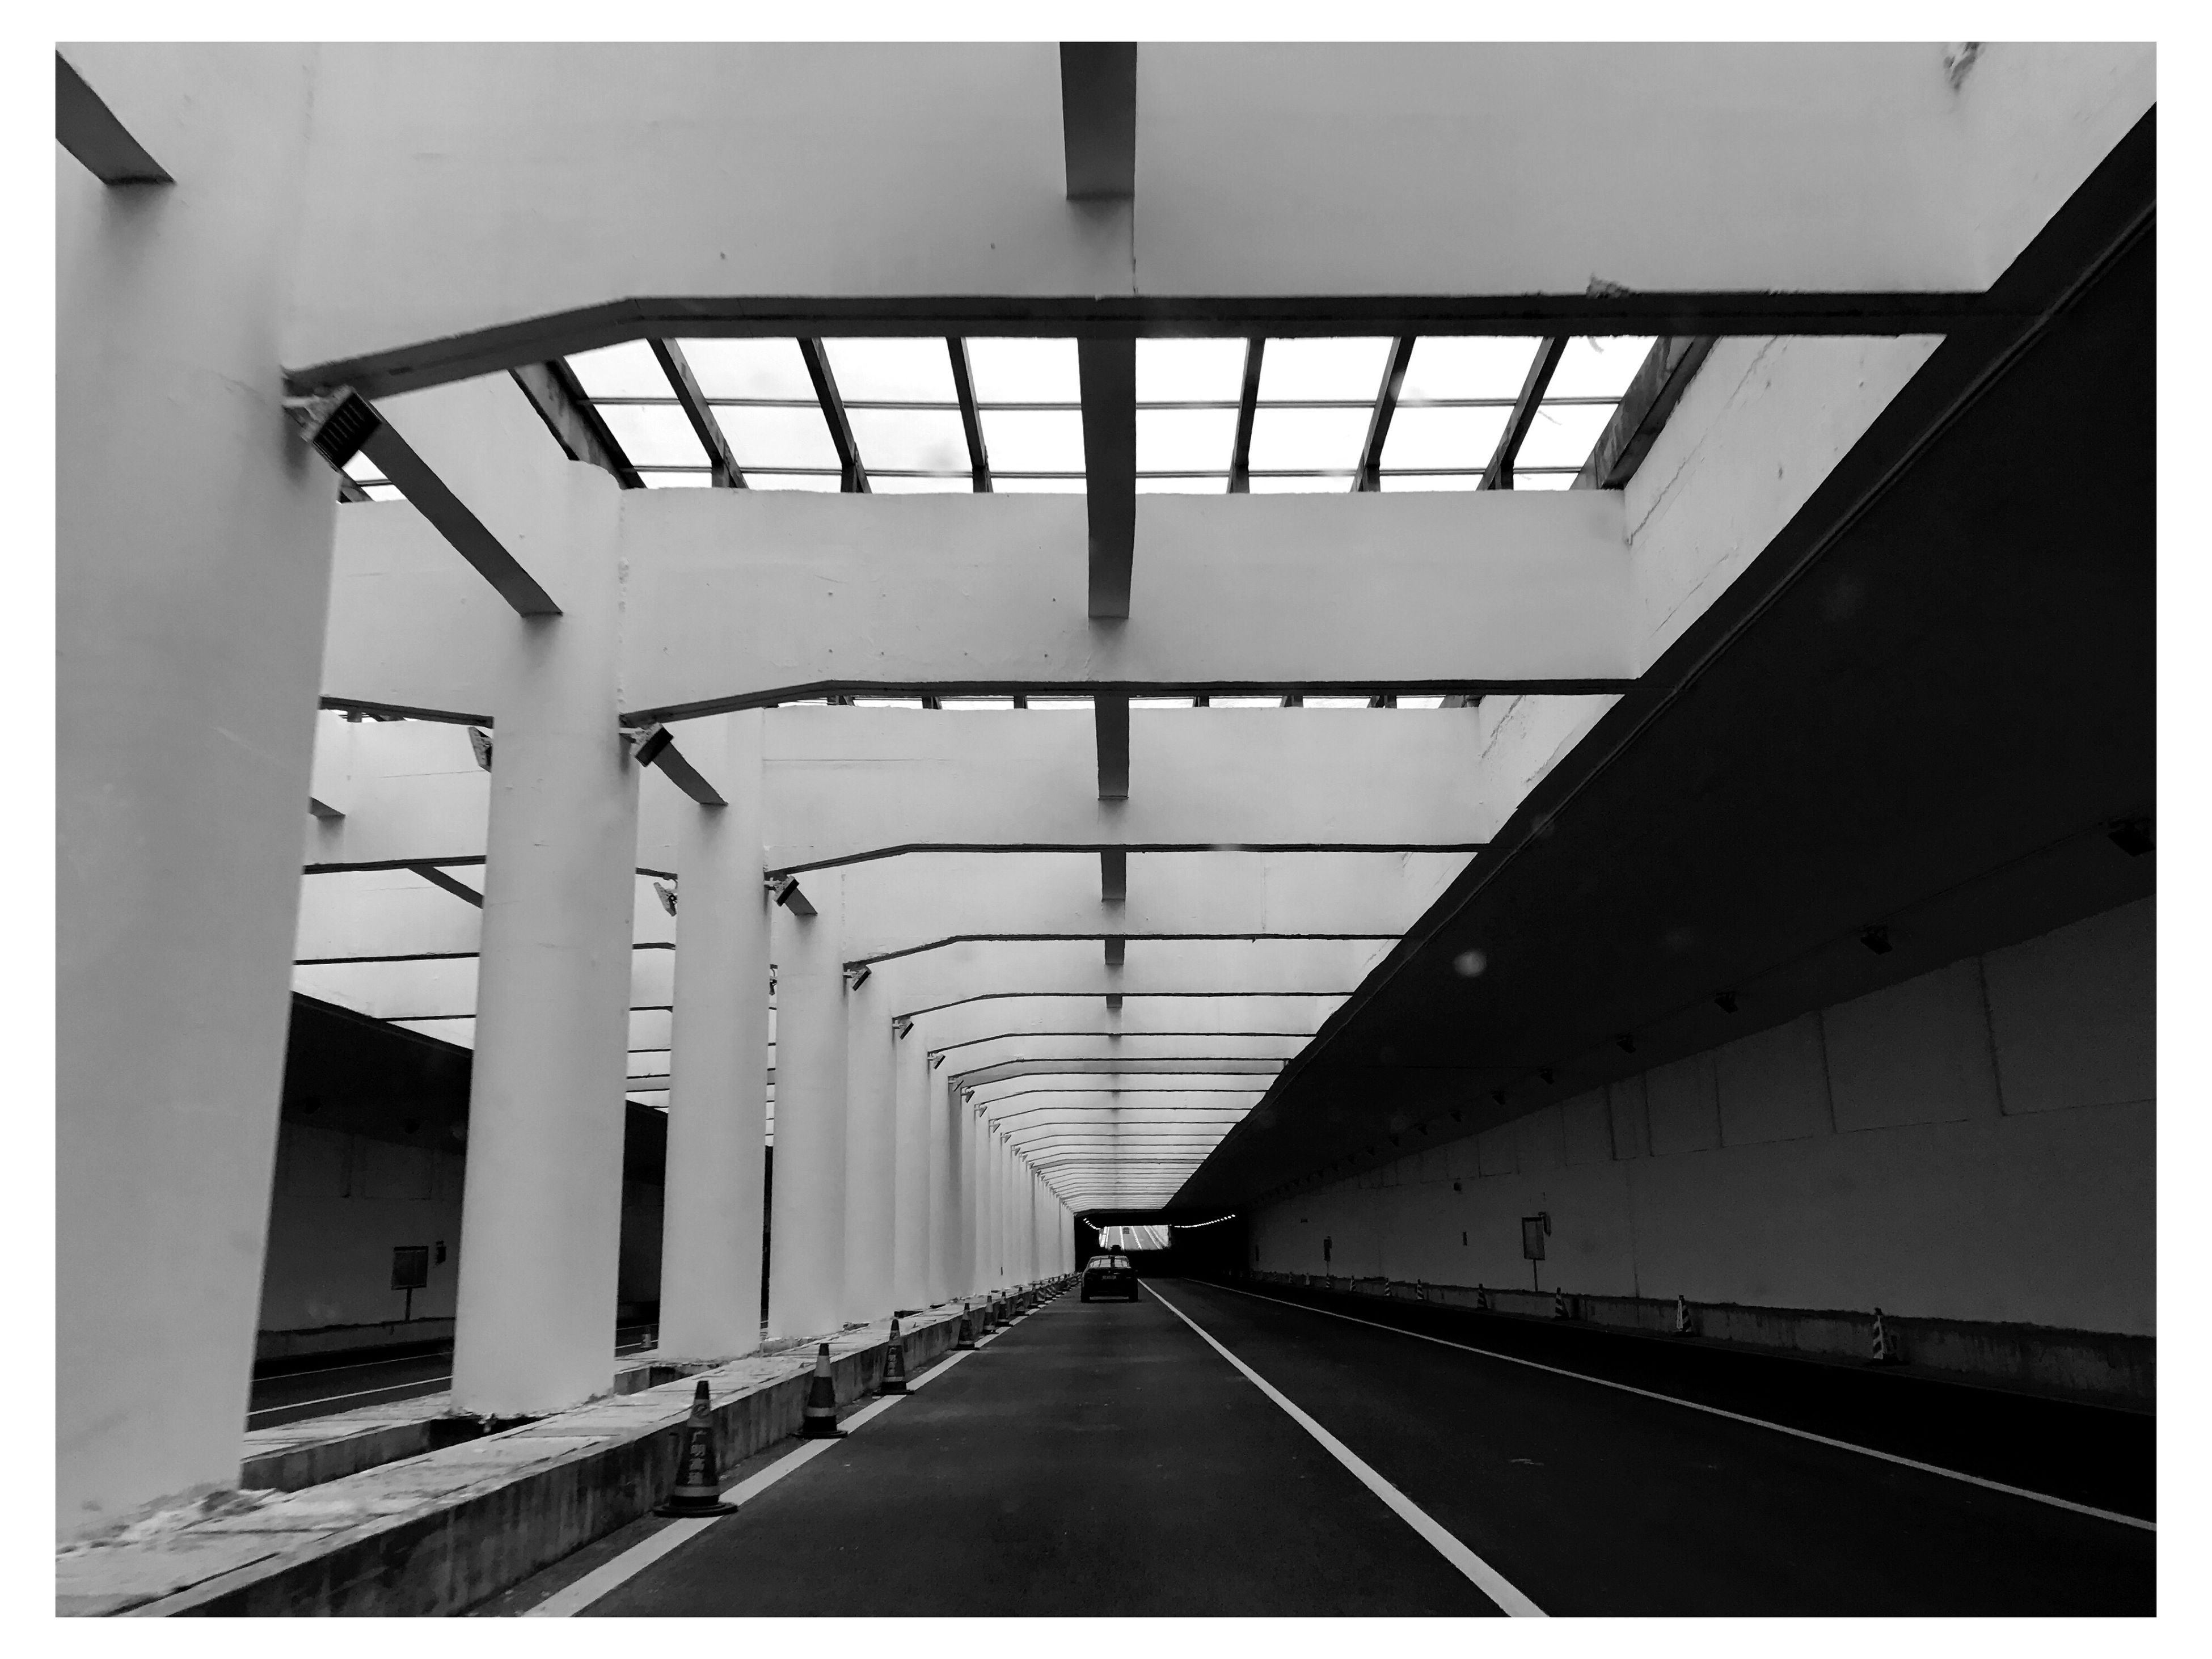 the way forward, architecture, indoors, diminishing perspective, auto post production filter, transfer print, built structure, vanishing point, connection, transportation, ceiling, surface level, long, modern, empty, bridge - man made structure, architectural feature, day, in a row, underpass, repetition, interior, covered bridge, conformity, elevated walkway, ceiling light, no people